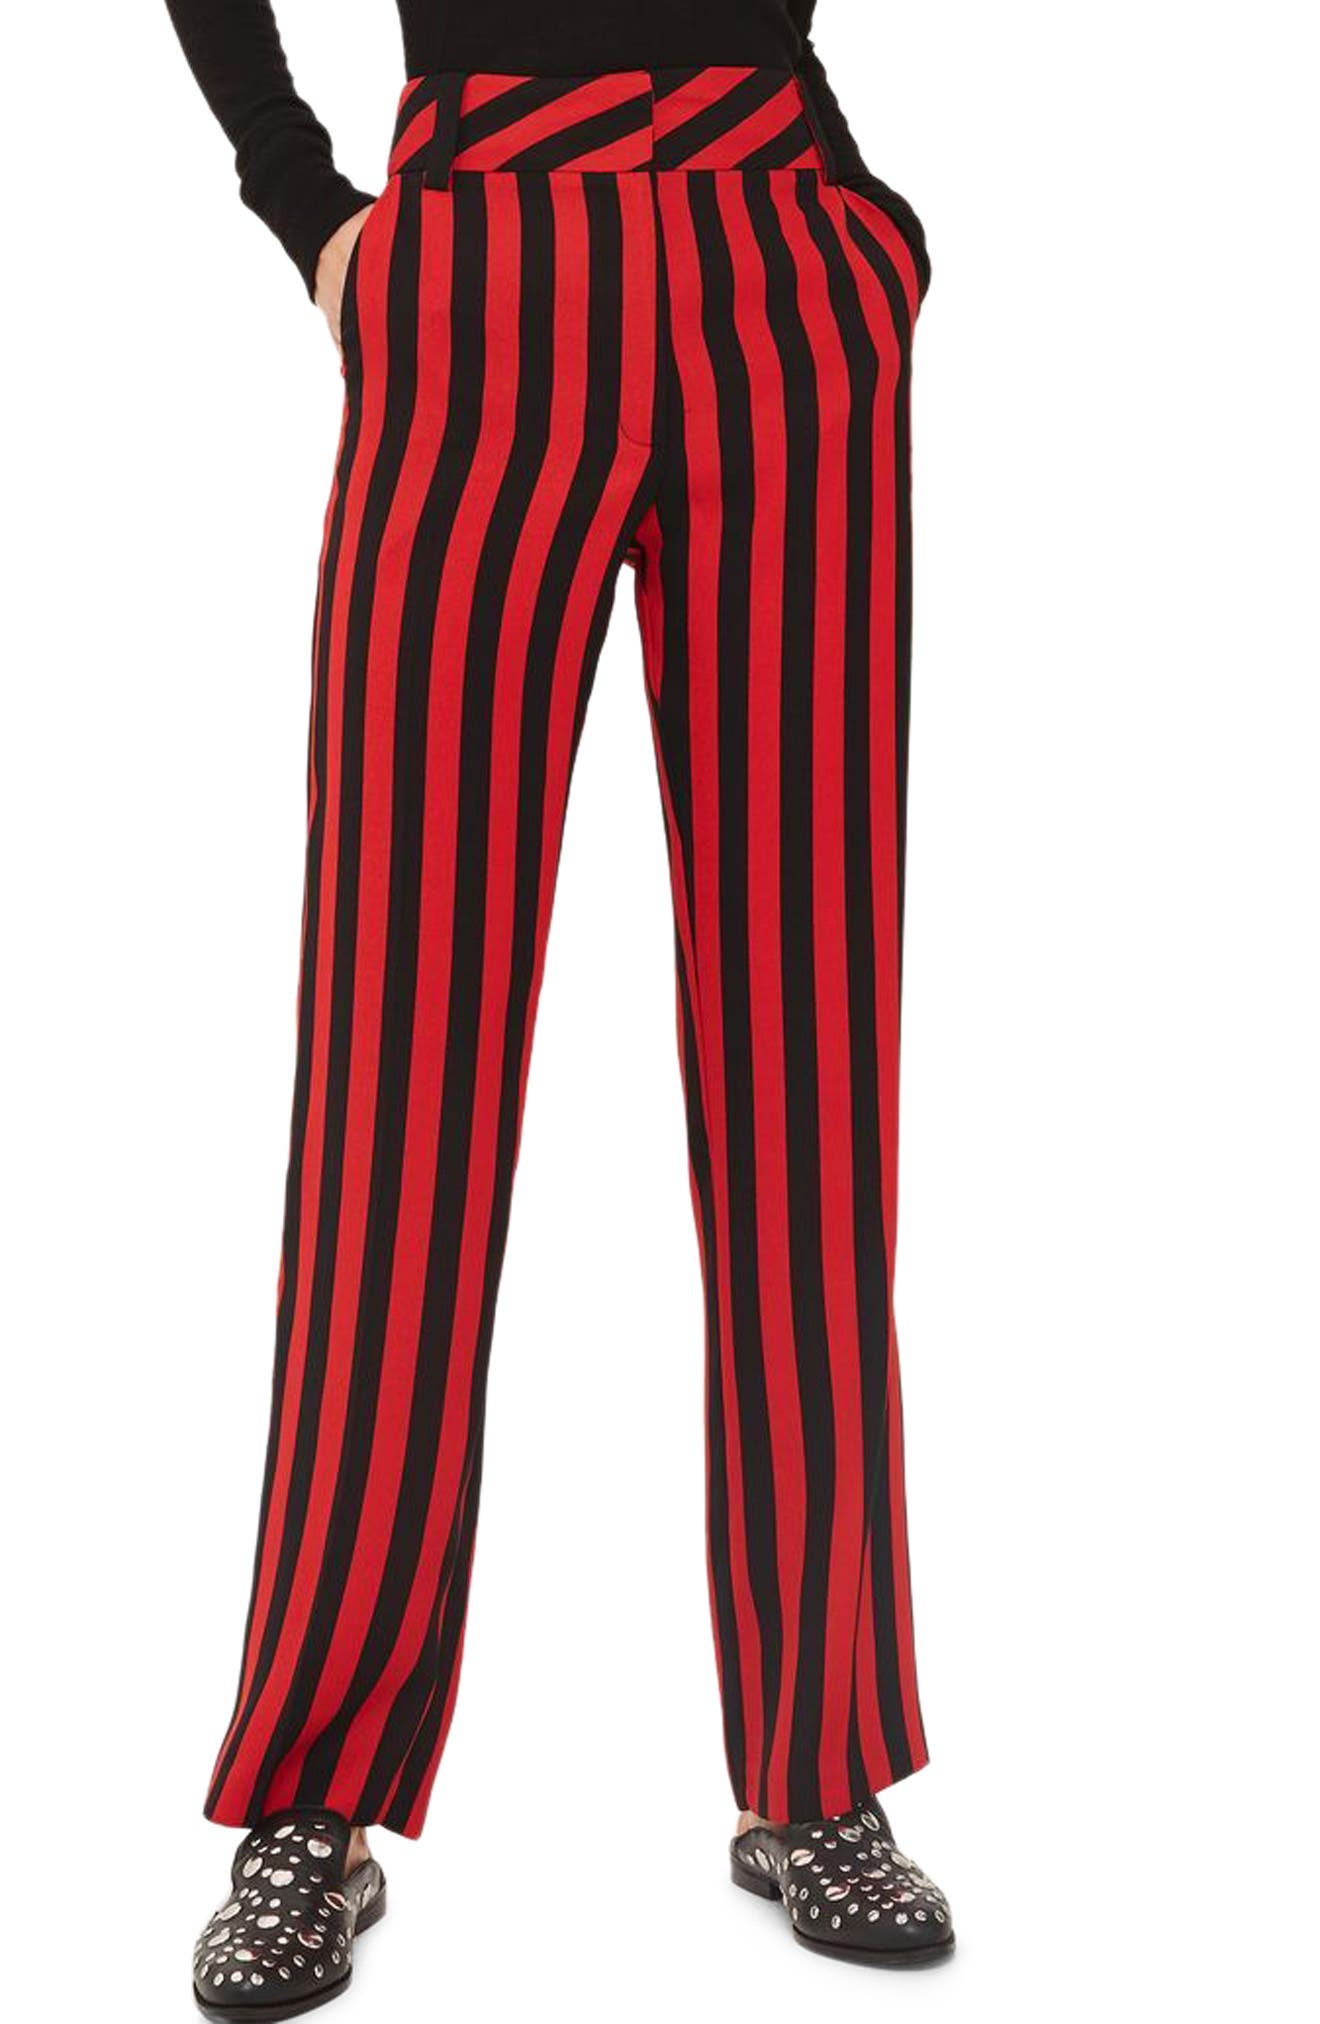 Humbug Stripe Trousers,                             Main thumbnail 1, color,                             Red Multi